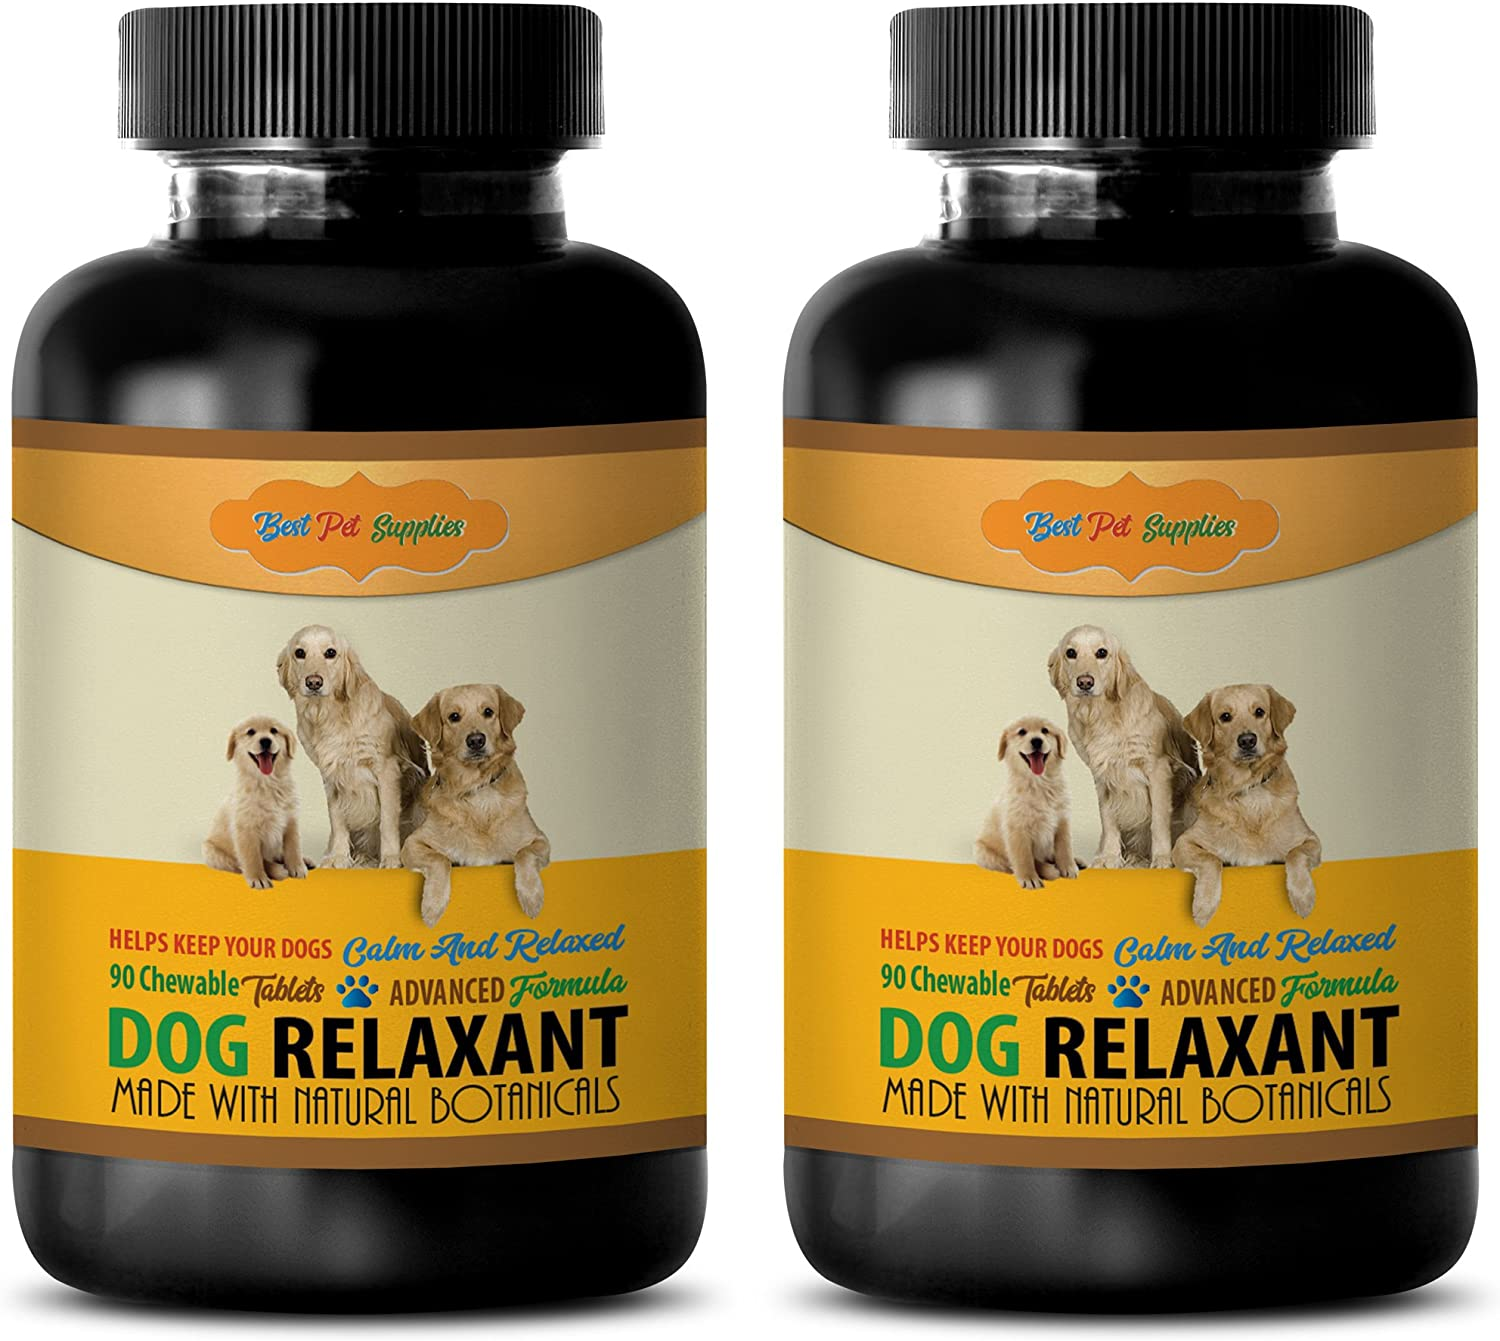 BEST PET SUPPLIES LLC Dog Relaxer - and Rela Popular brand in the world Relaxant Clearance SALE! Limited time! Calm